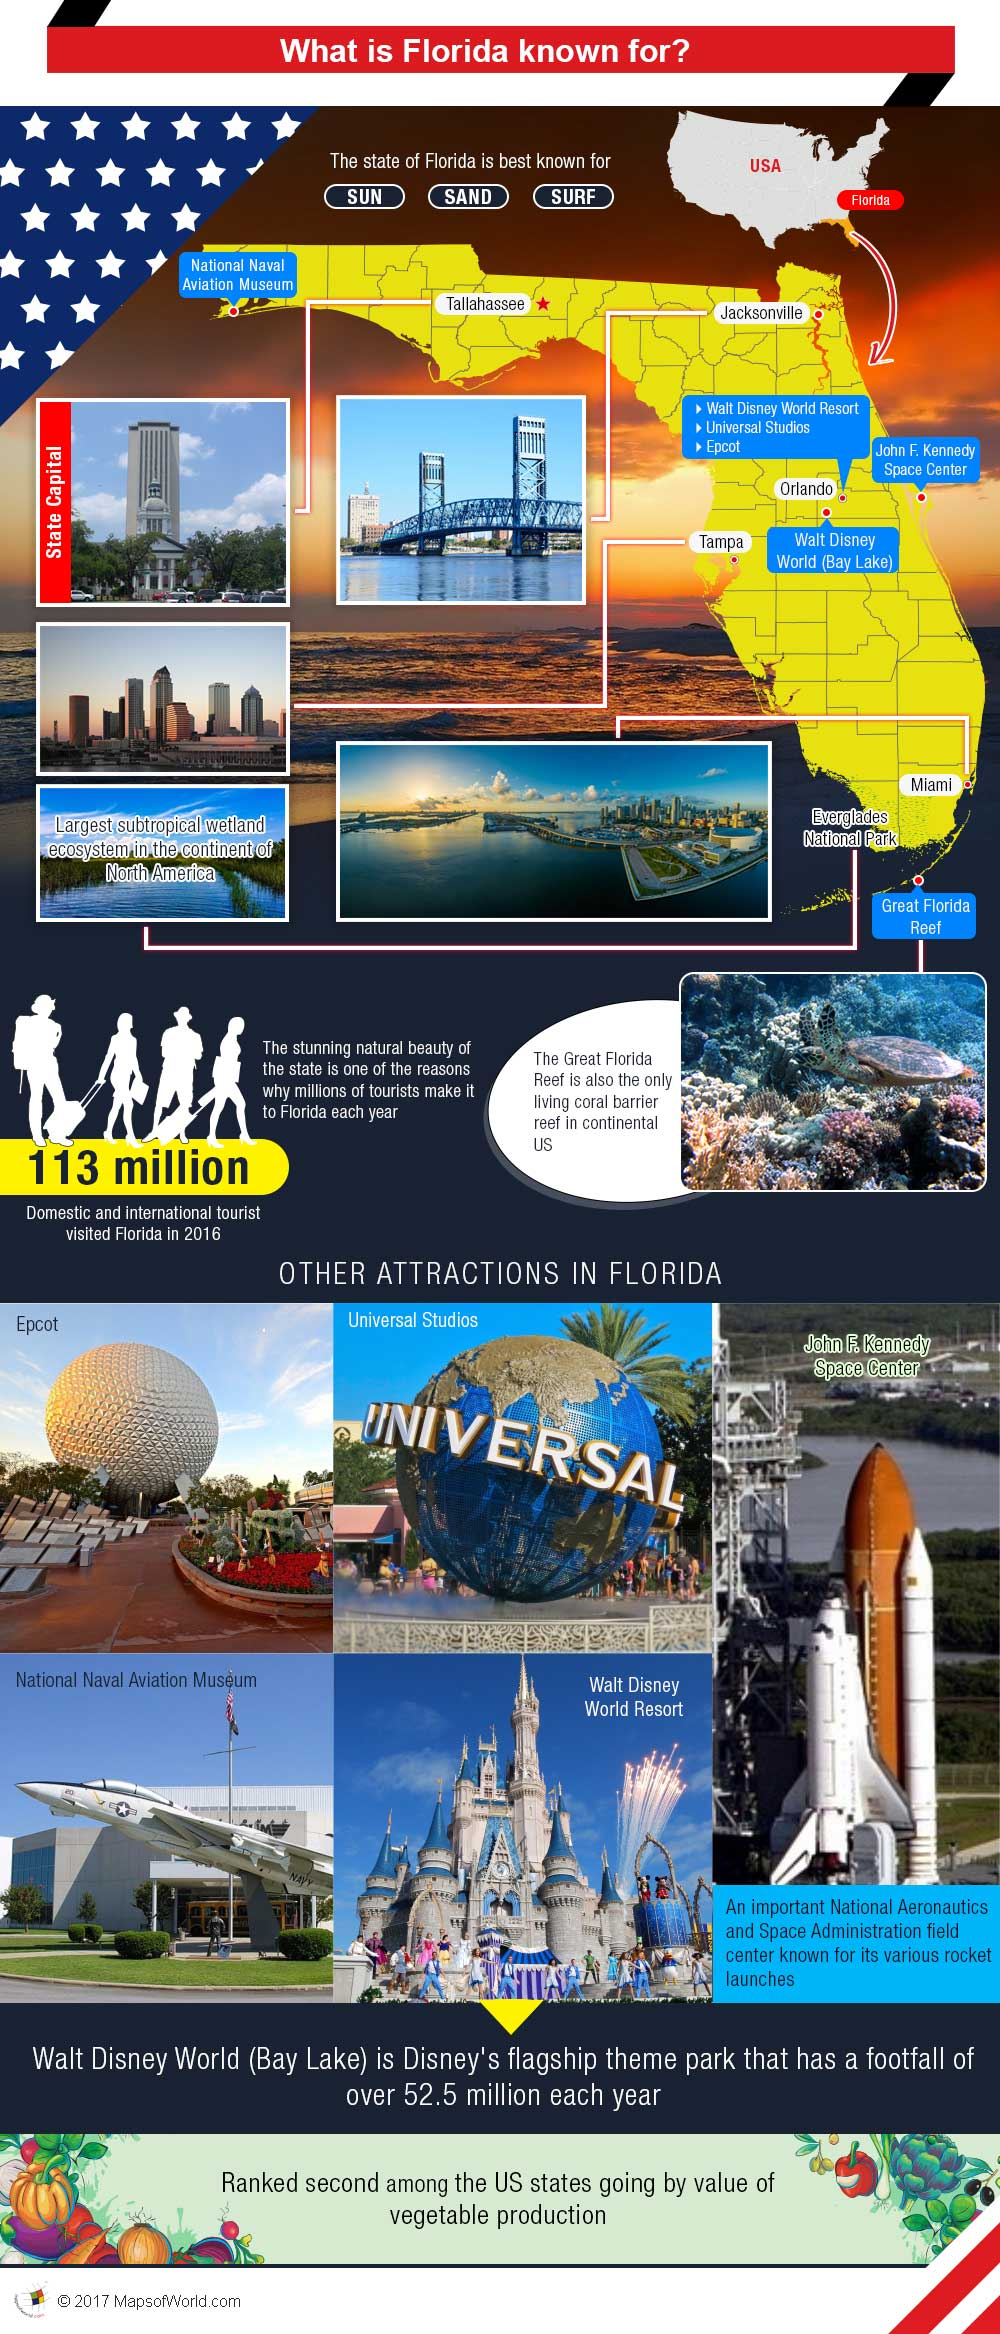 what is Florida known for - an Infographic